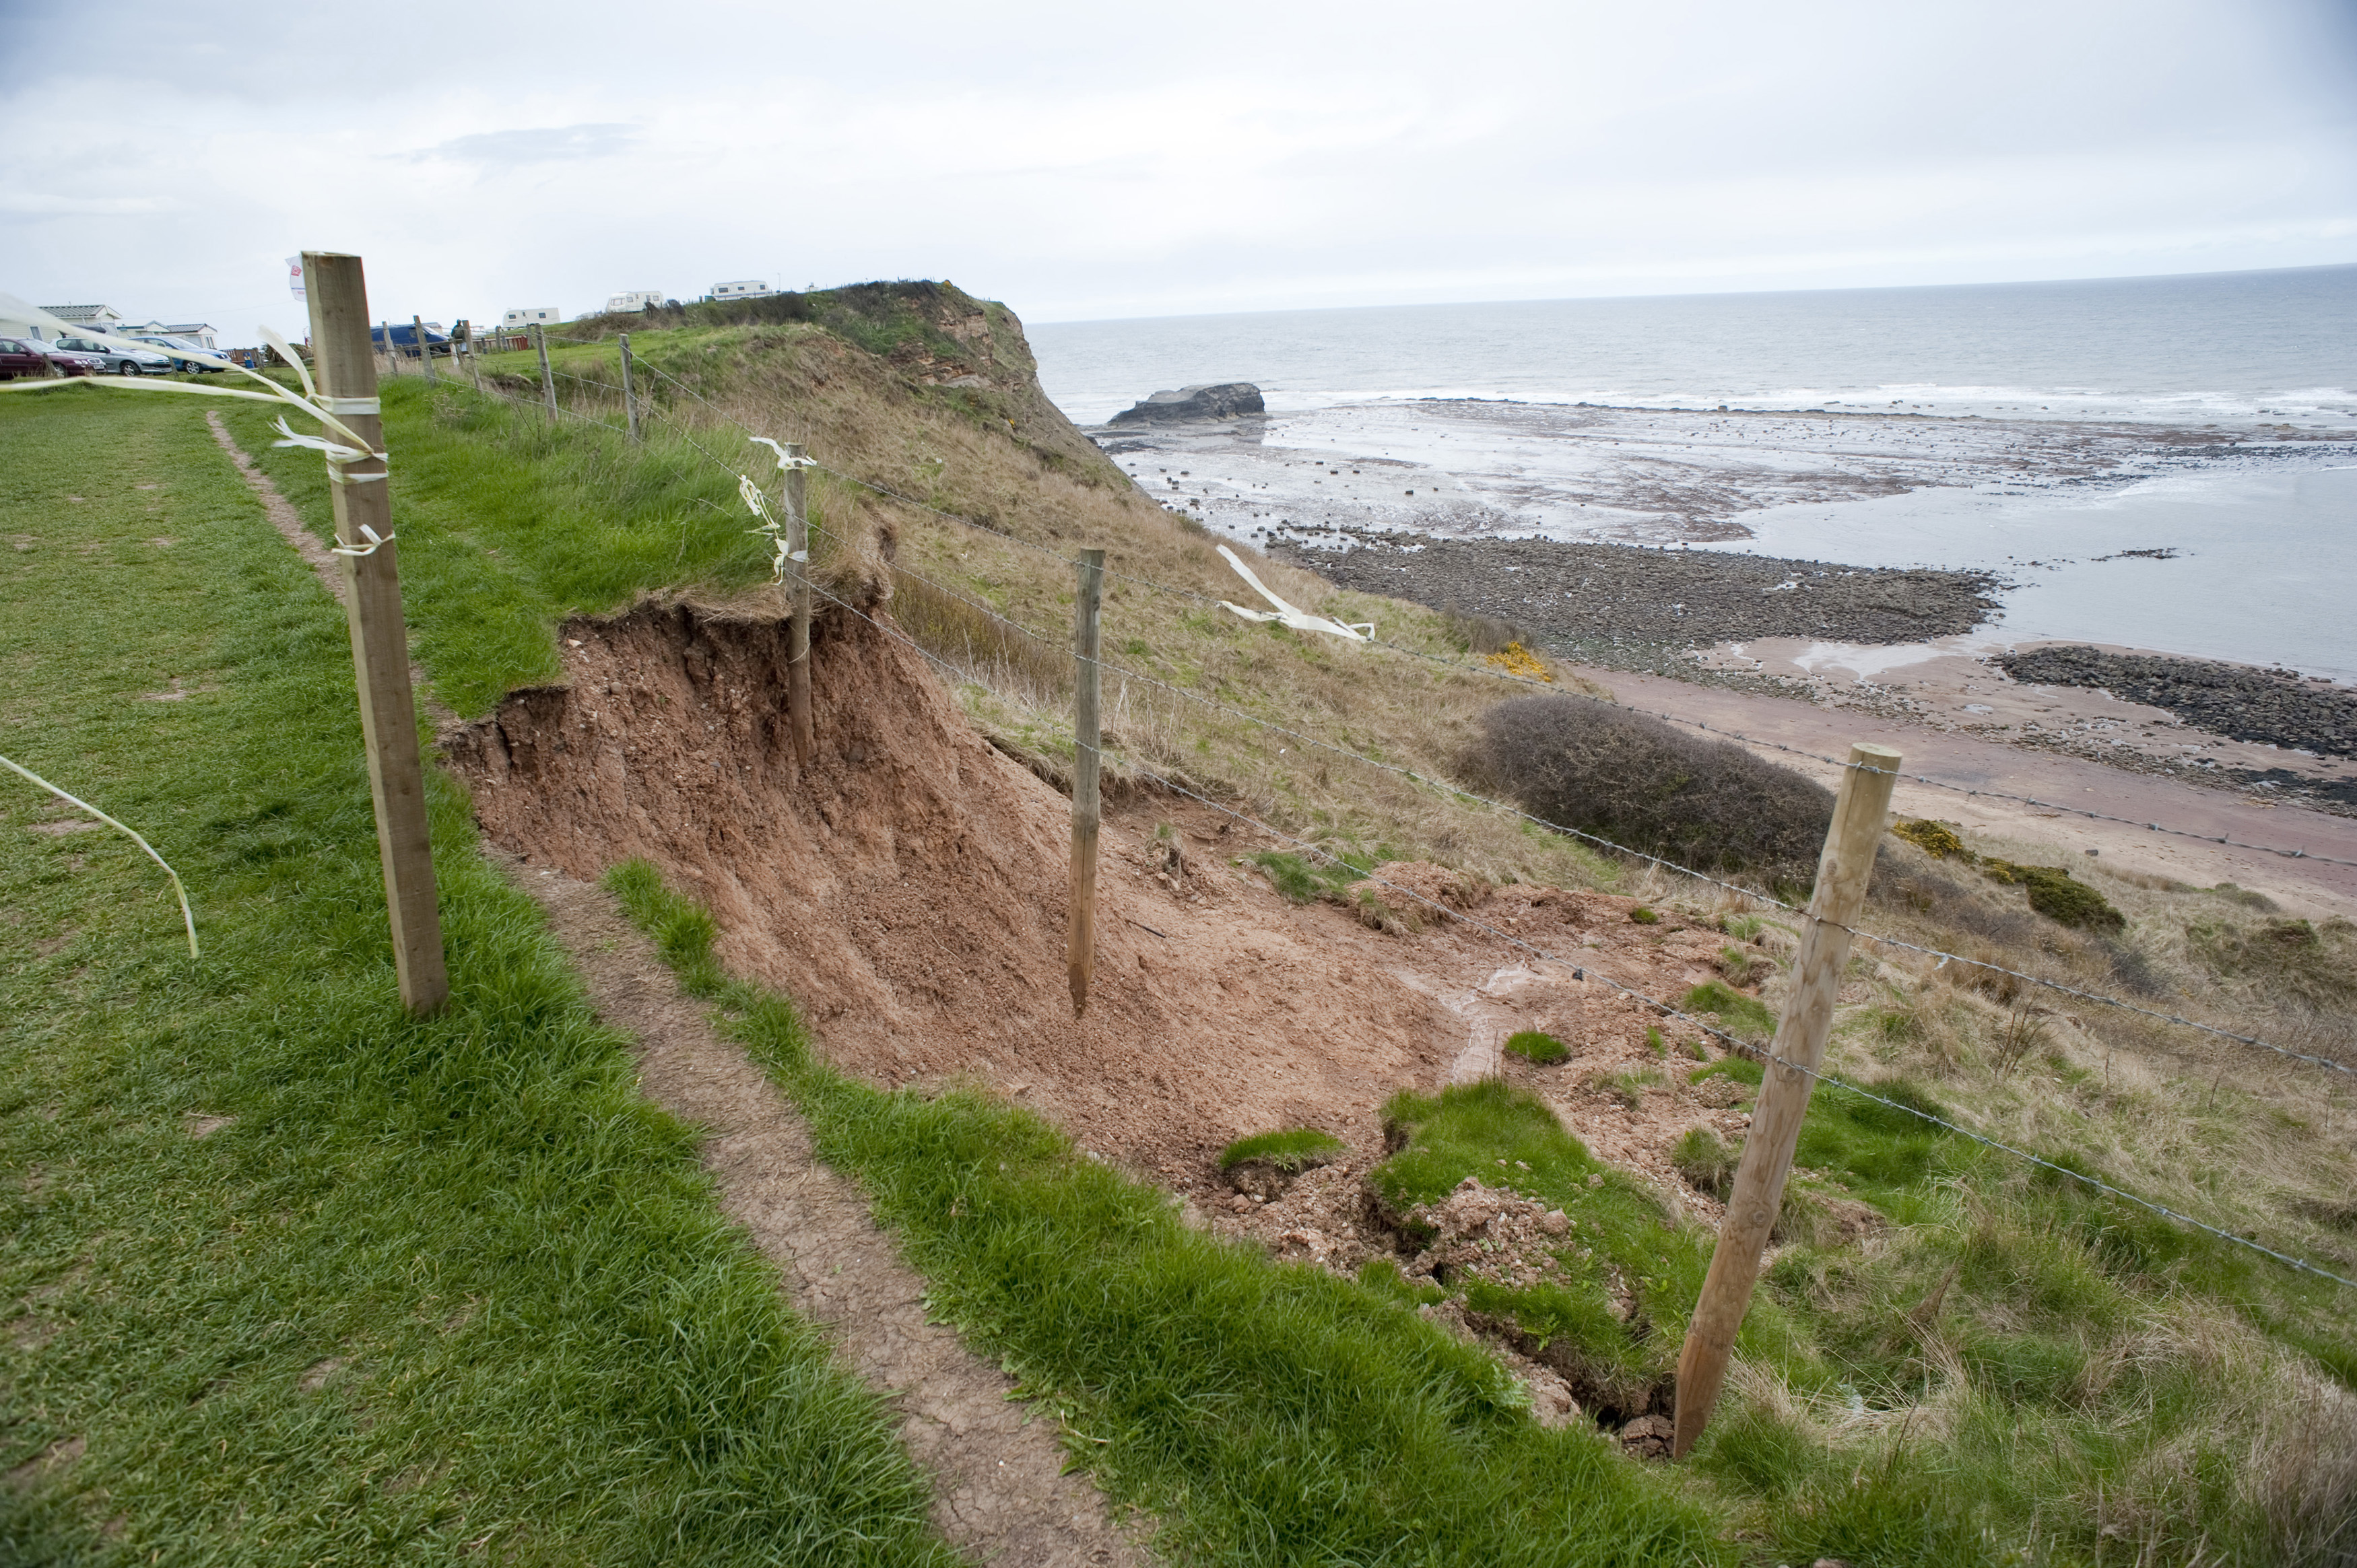 Soil erosion and washaway on a coastal cliff with landslip caused by weathering and water